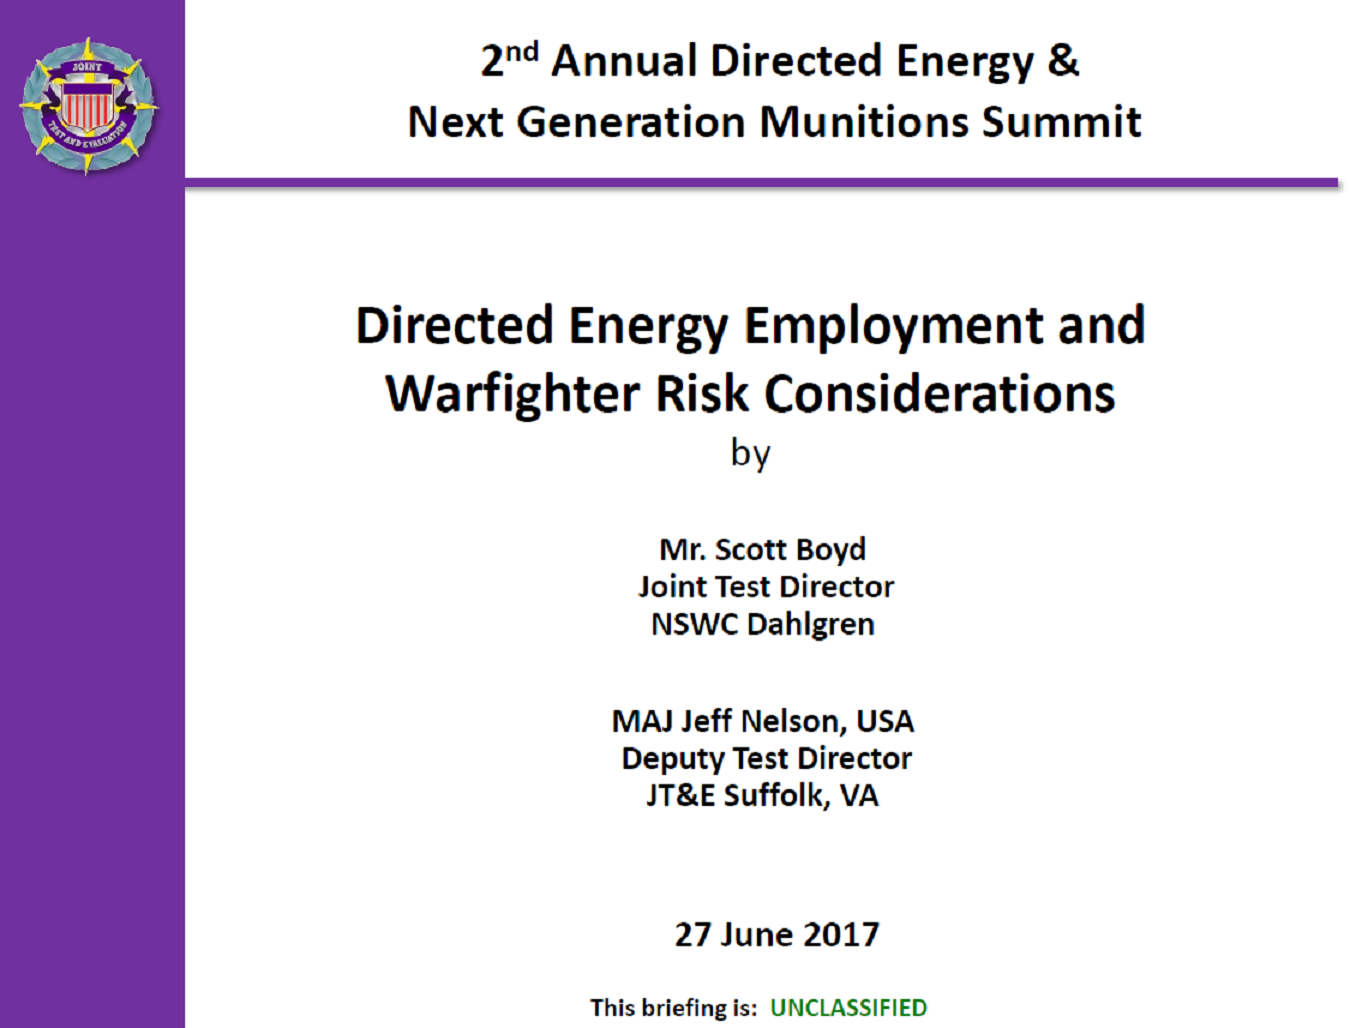 Directed Energy Employment and Warfighter Risk Considerations